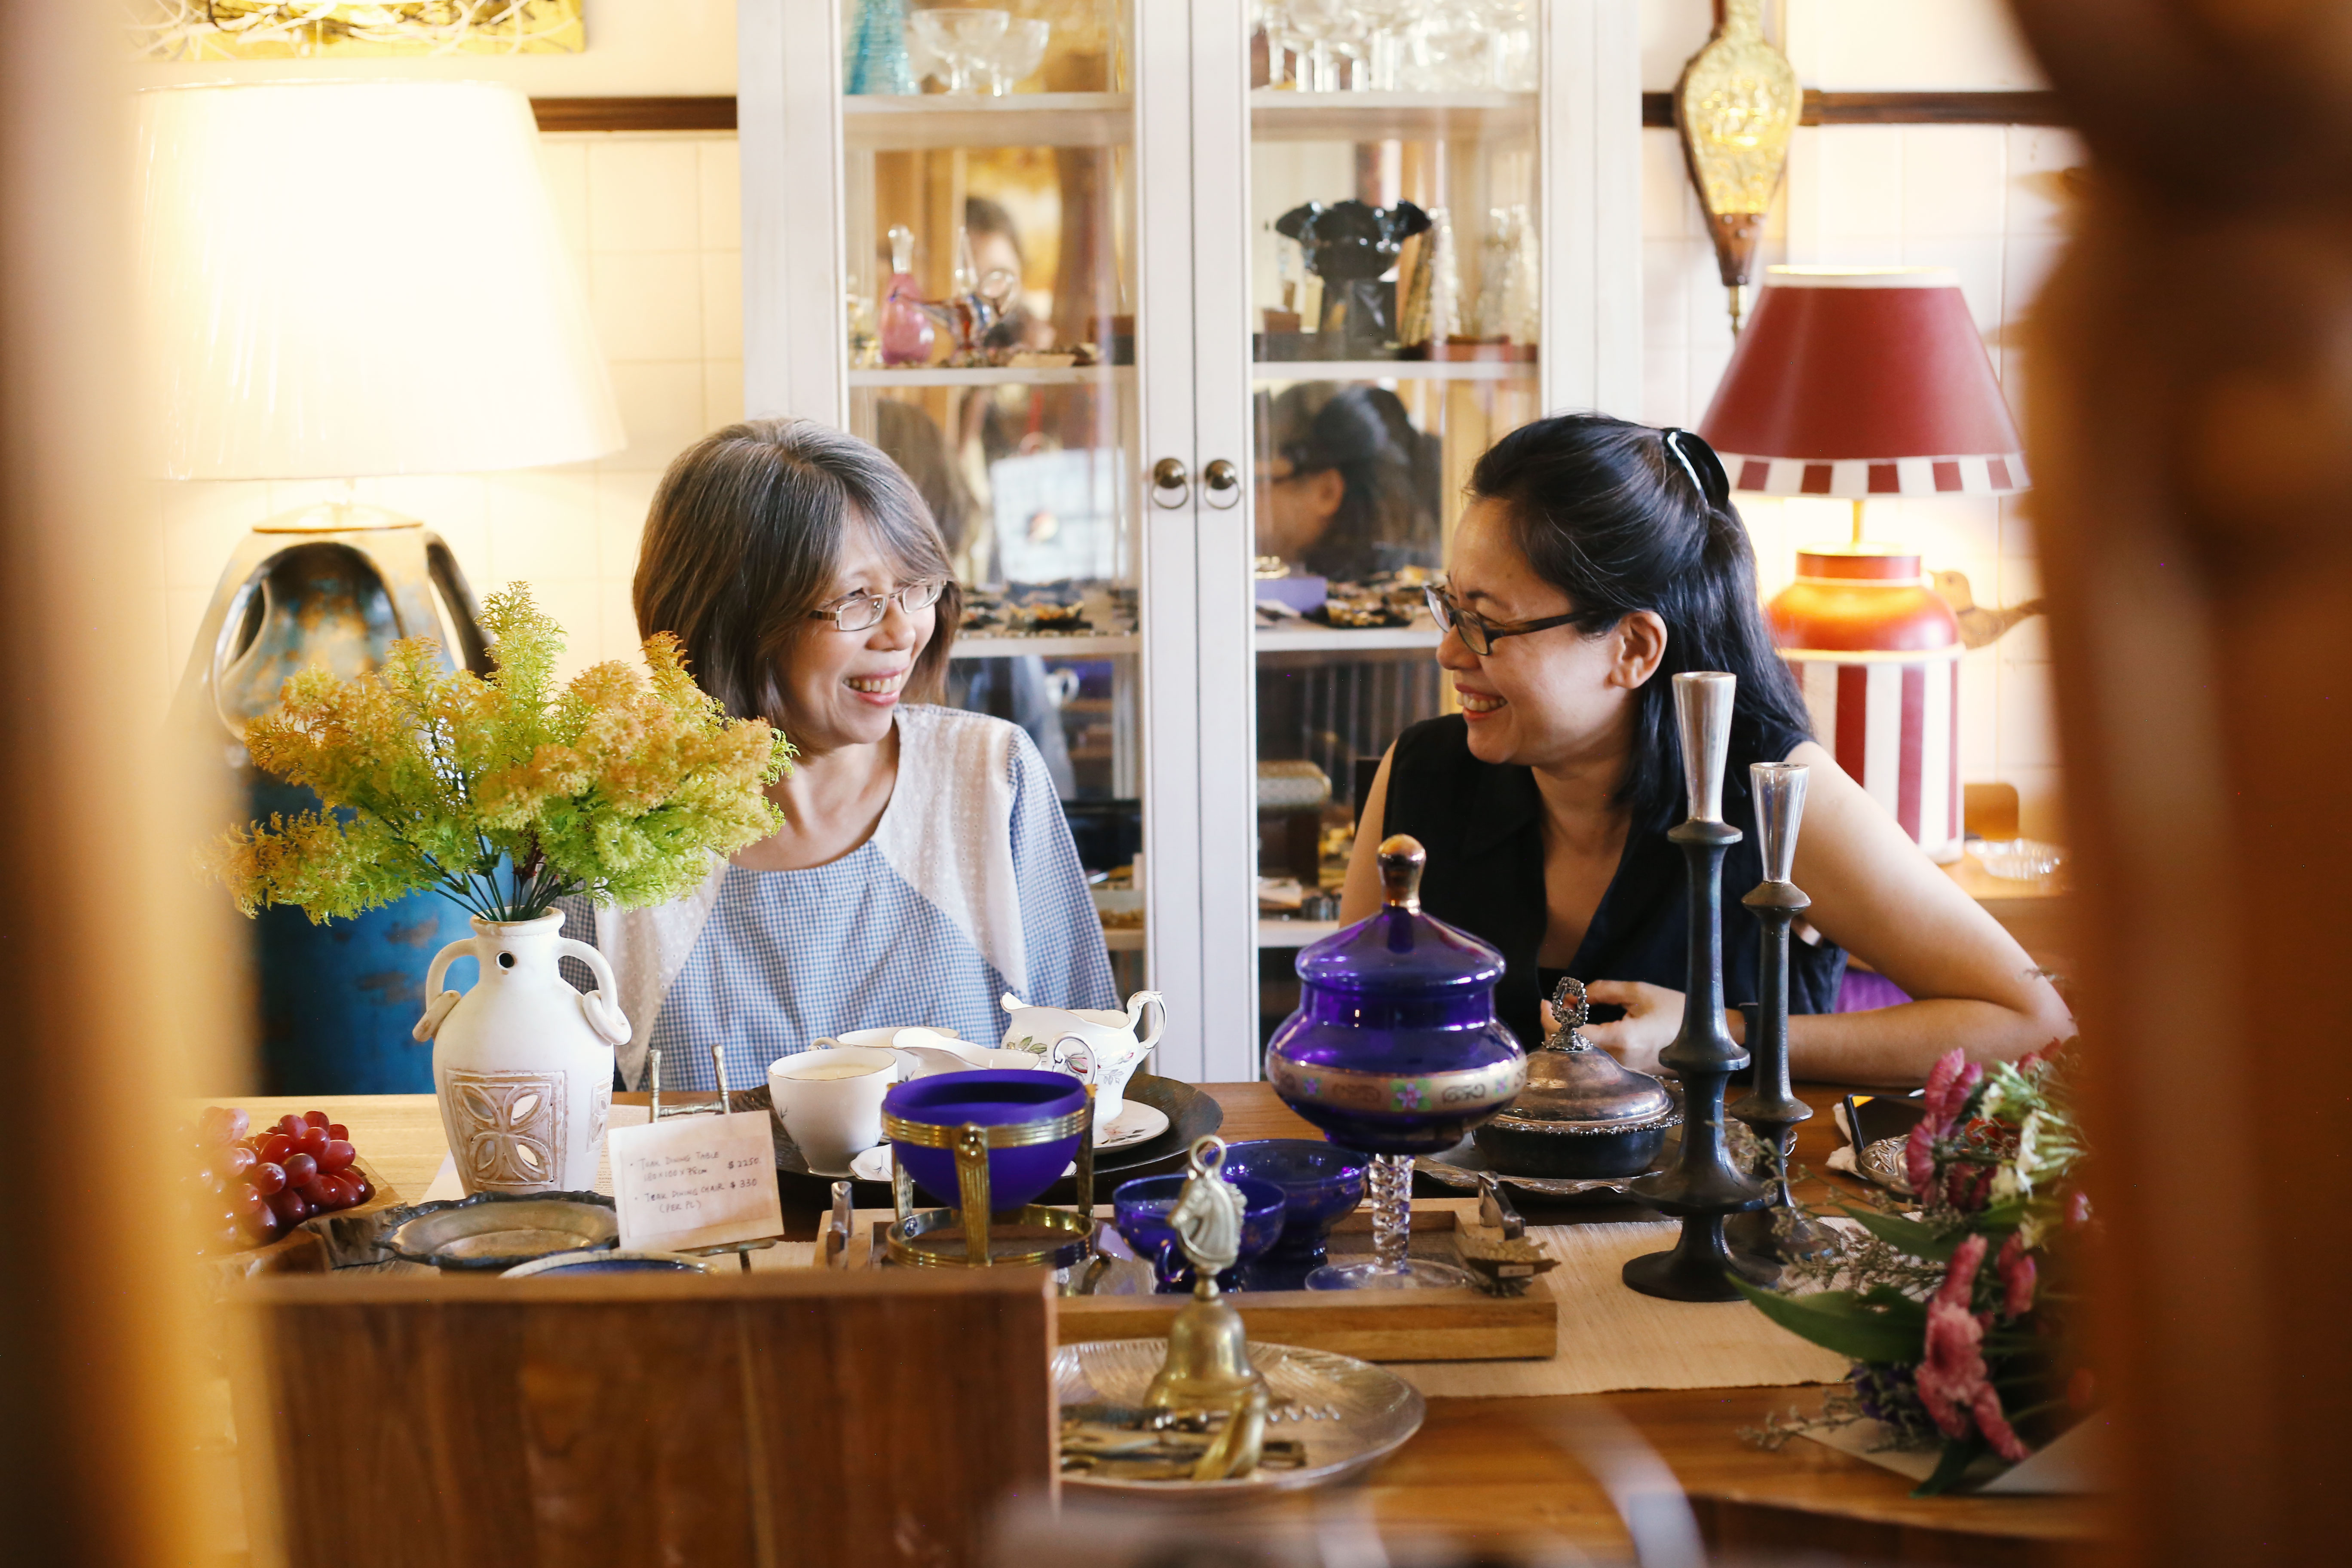 Customers Love Their Furniture Shop. So Why Are These Sisters Fighting To Save It?